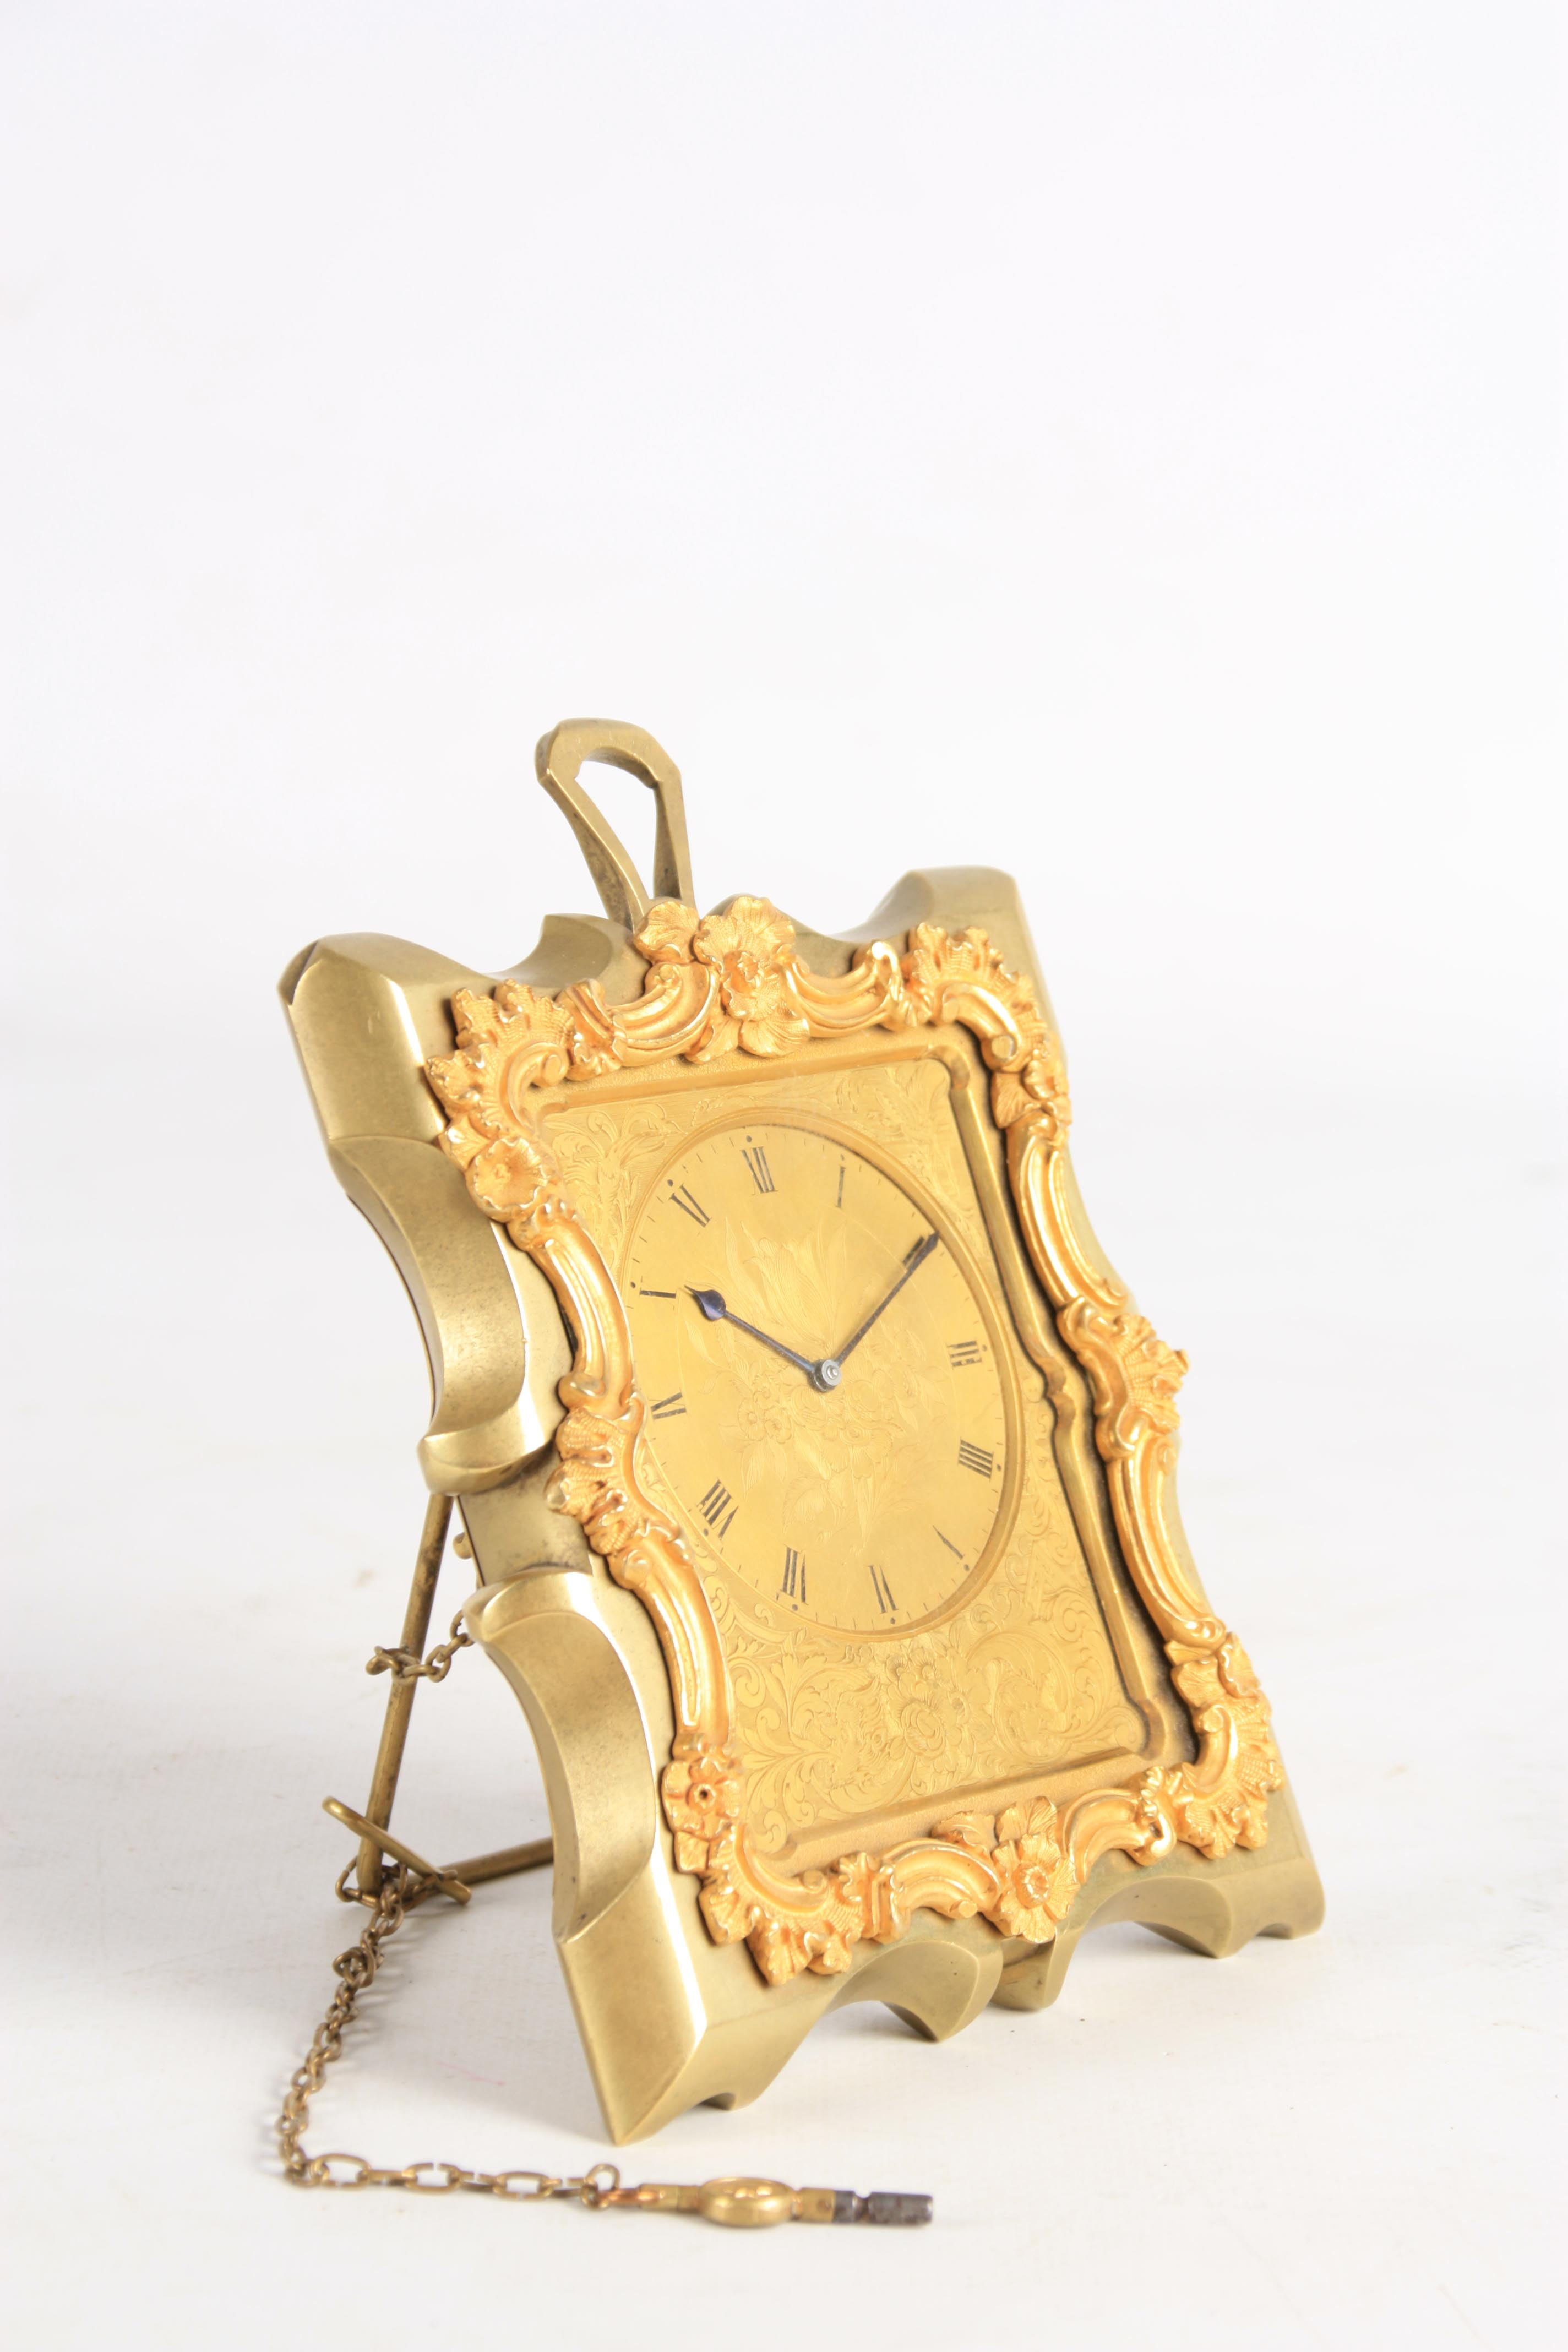 KLEYSER & CO. 66 HIGH STREET, LONDON A MID 19TH CENTURY BRASS STRUT CLOCK IN THE MANNER OF THOMAS - Image 4 of 6